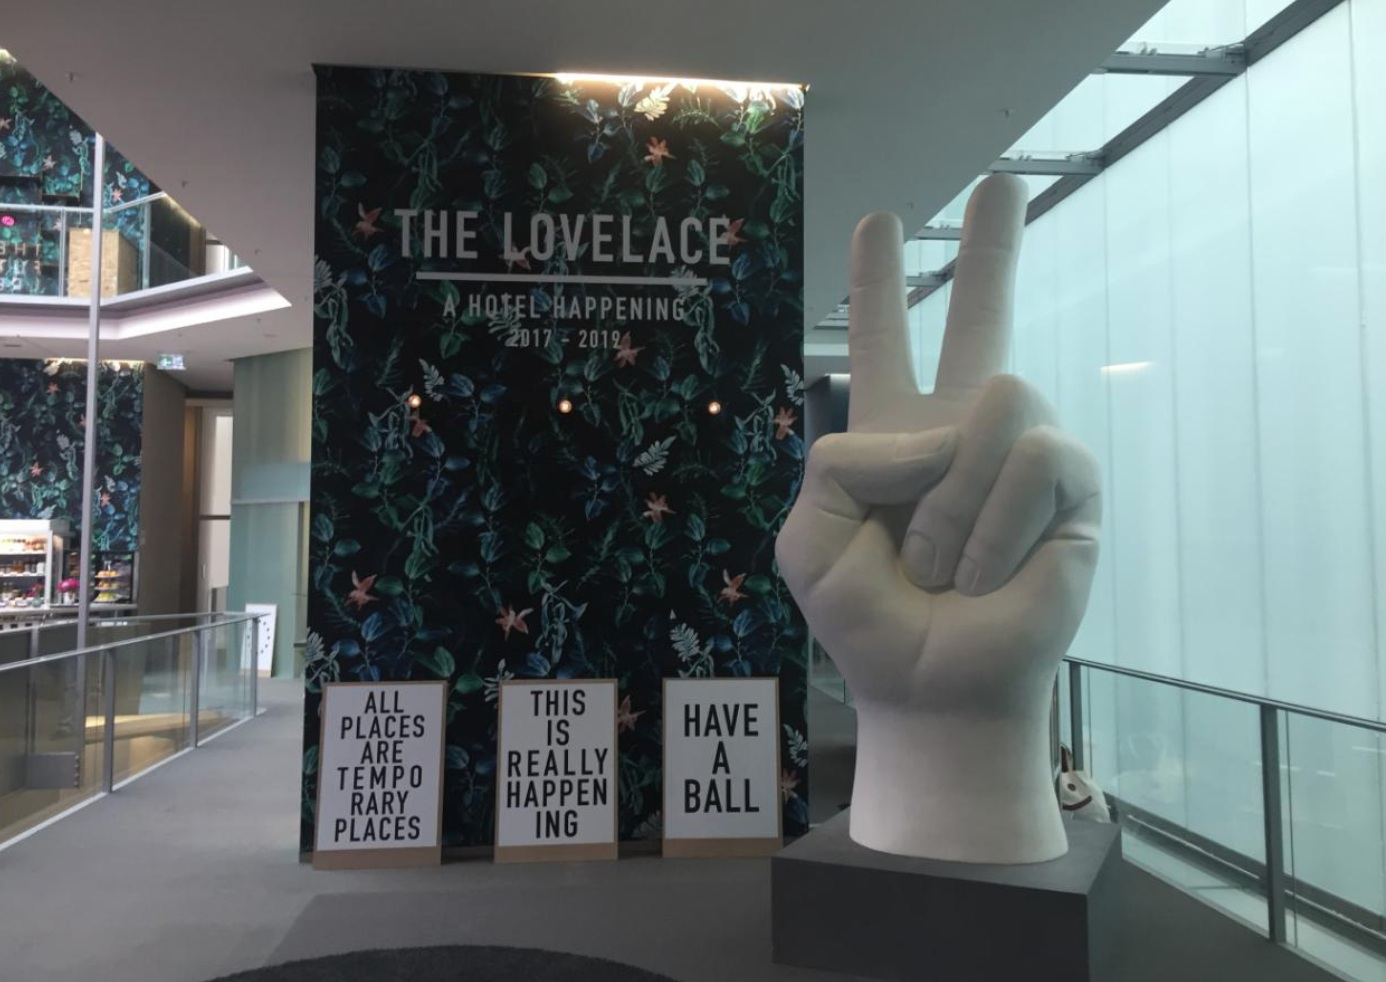 pic - The Lovelace – A hotel happening